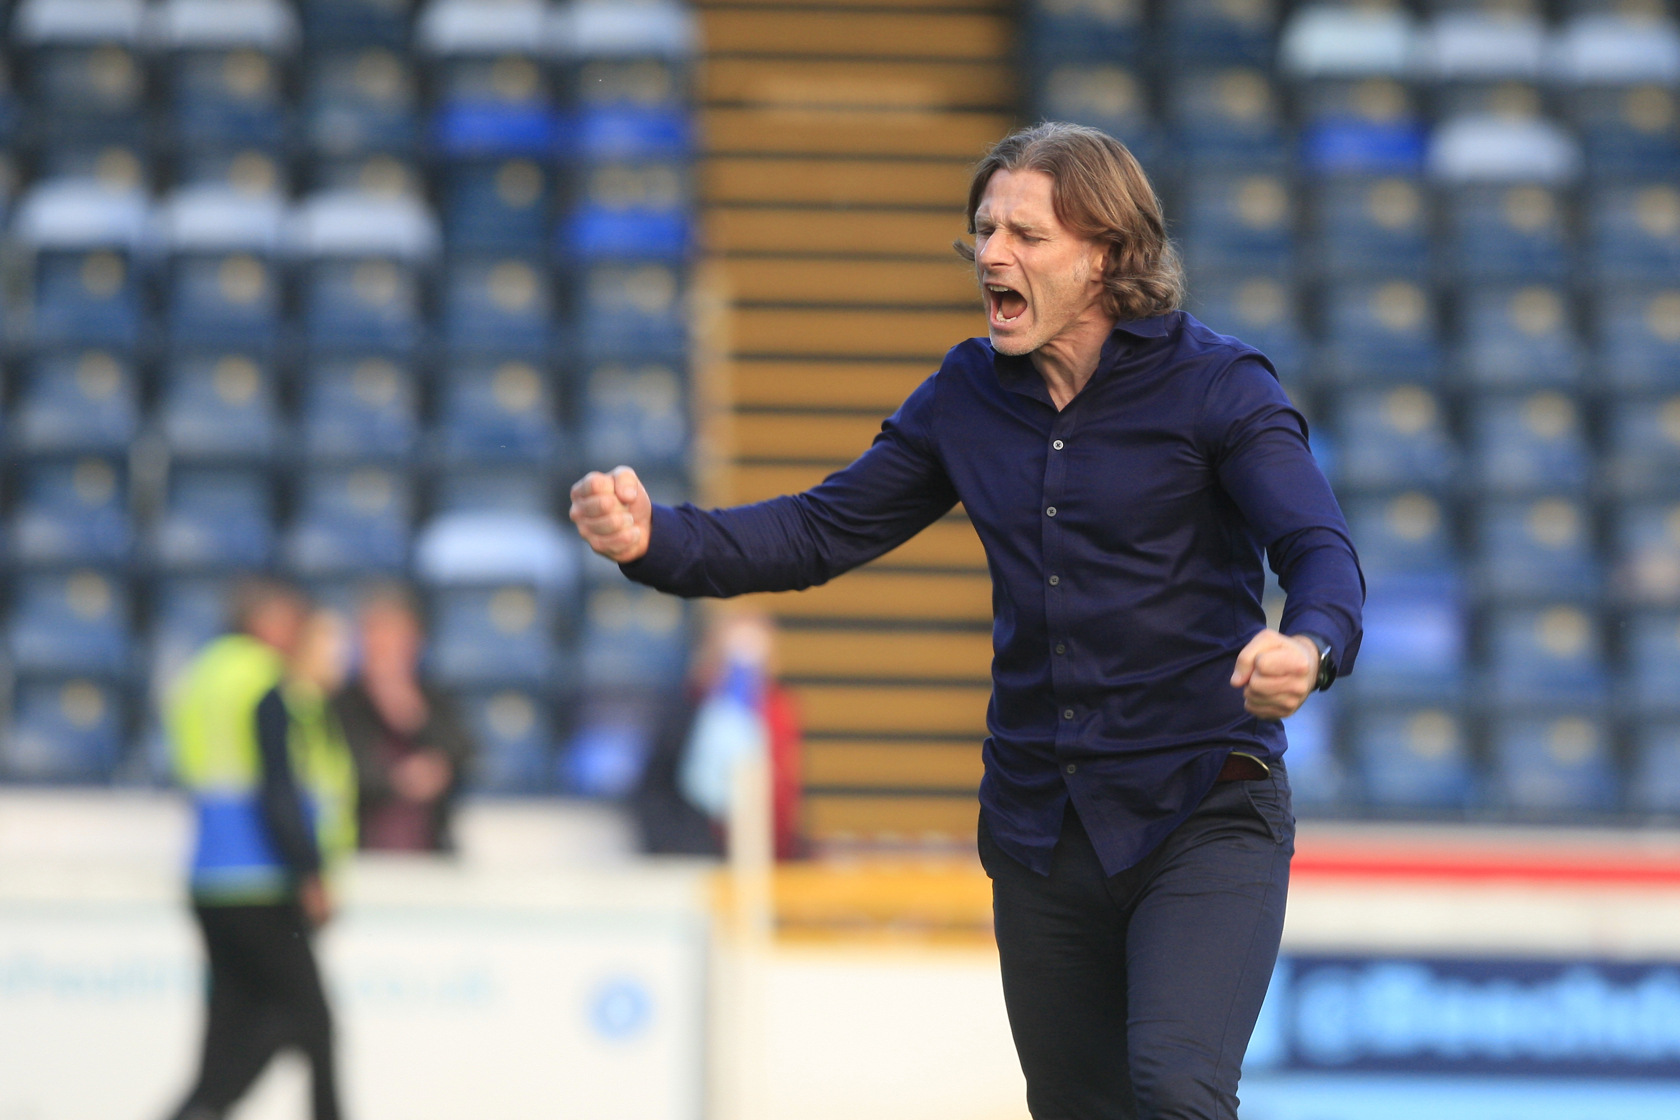 Wycombe boss Ainsworth was proud of his side's draw at Sunderland